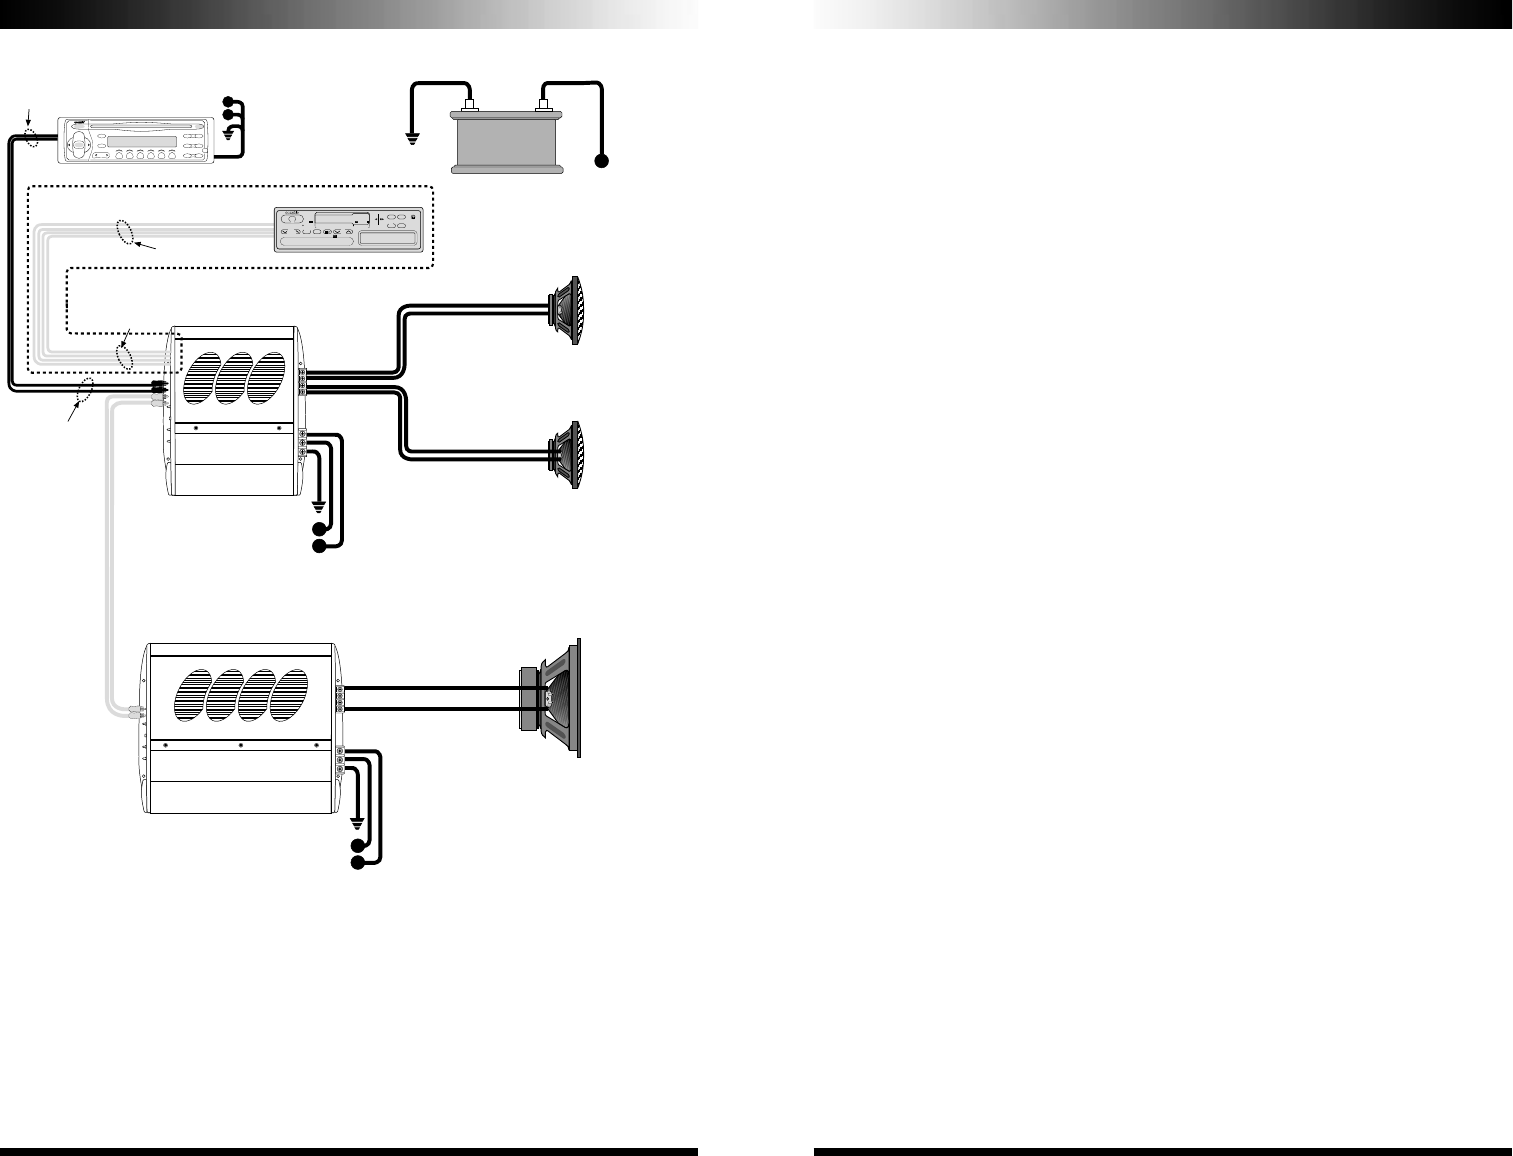 coustic amp wiring diagram automotive wiring diagram library u2022 rh exmouthhomecomputers co uk